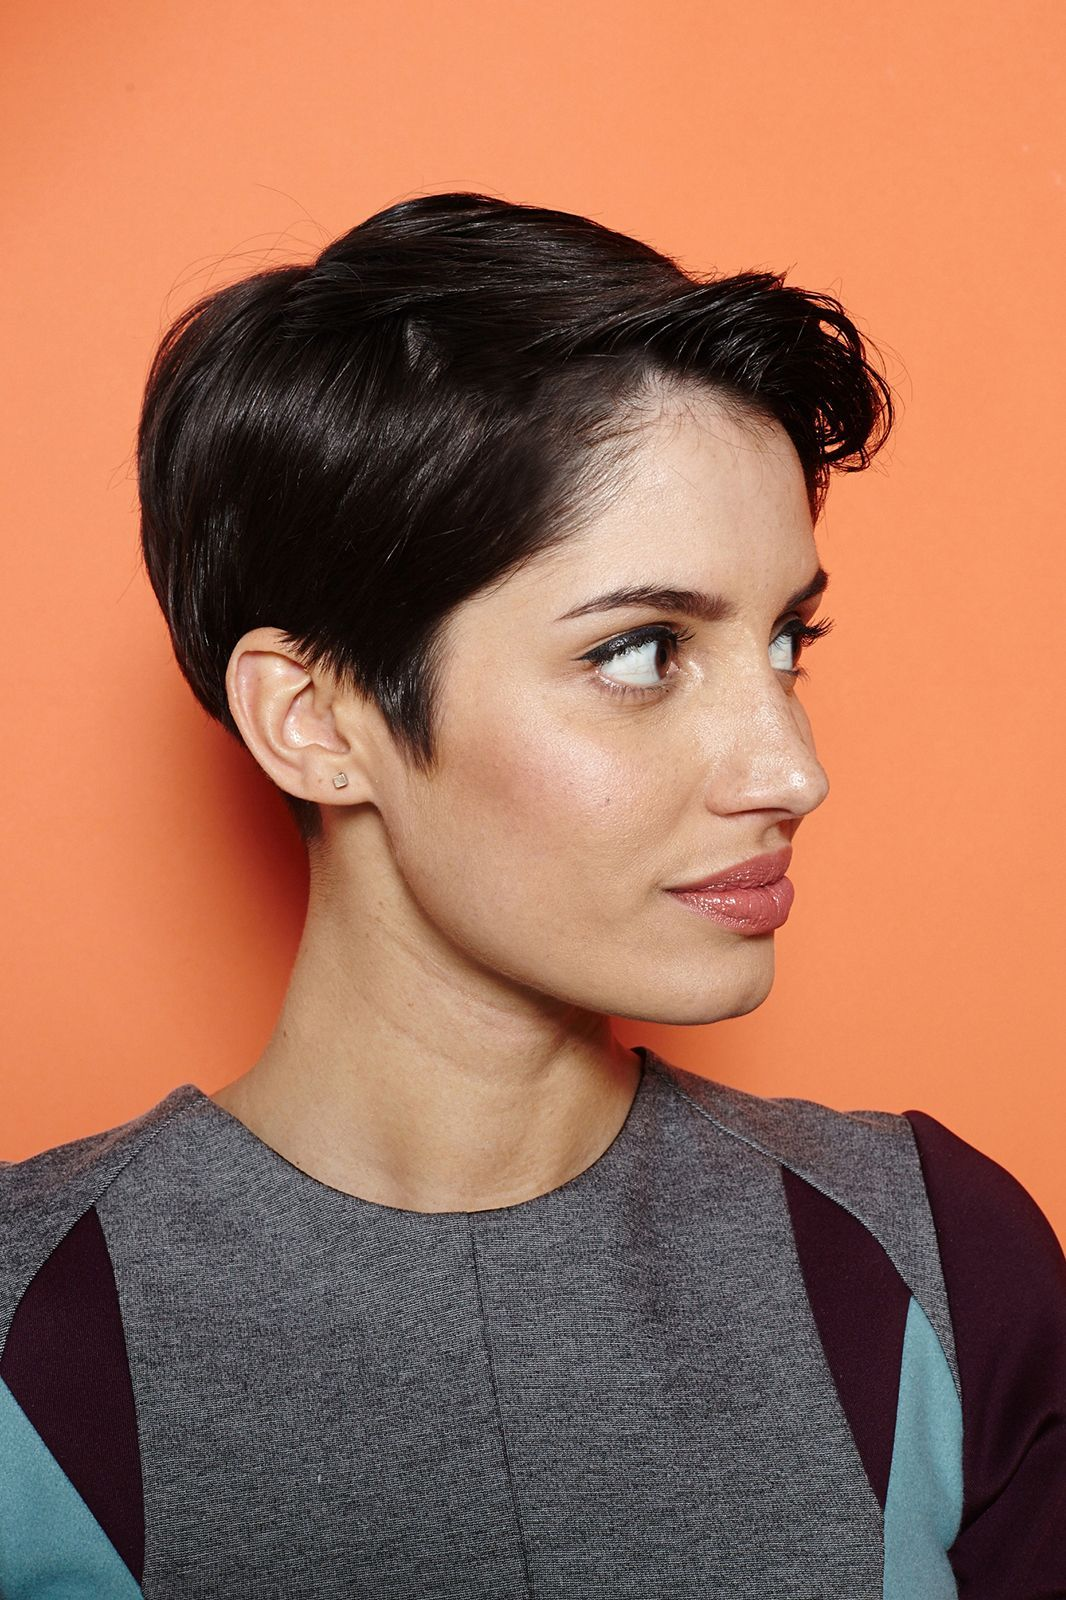 Pixie hairstyles new styles for really short hair hot bobs